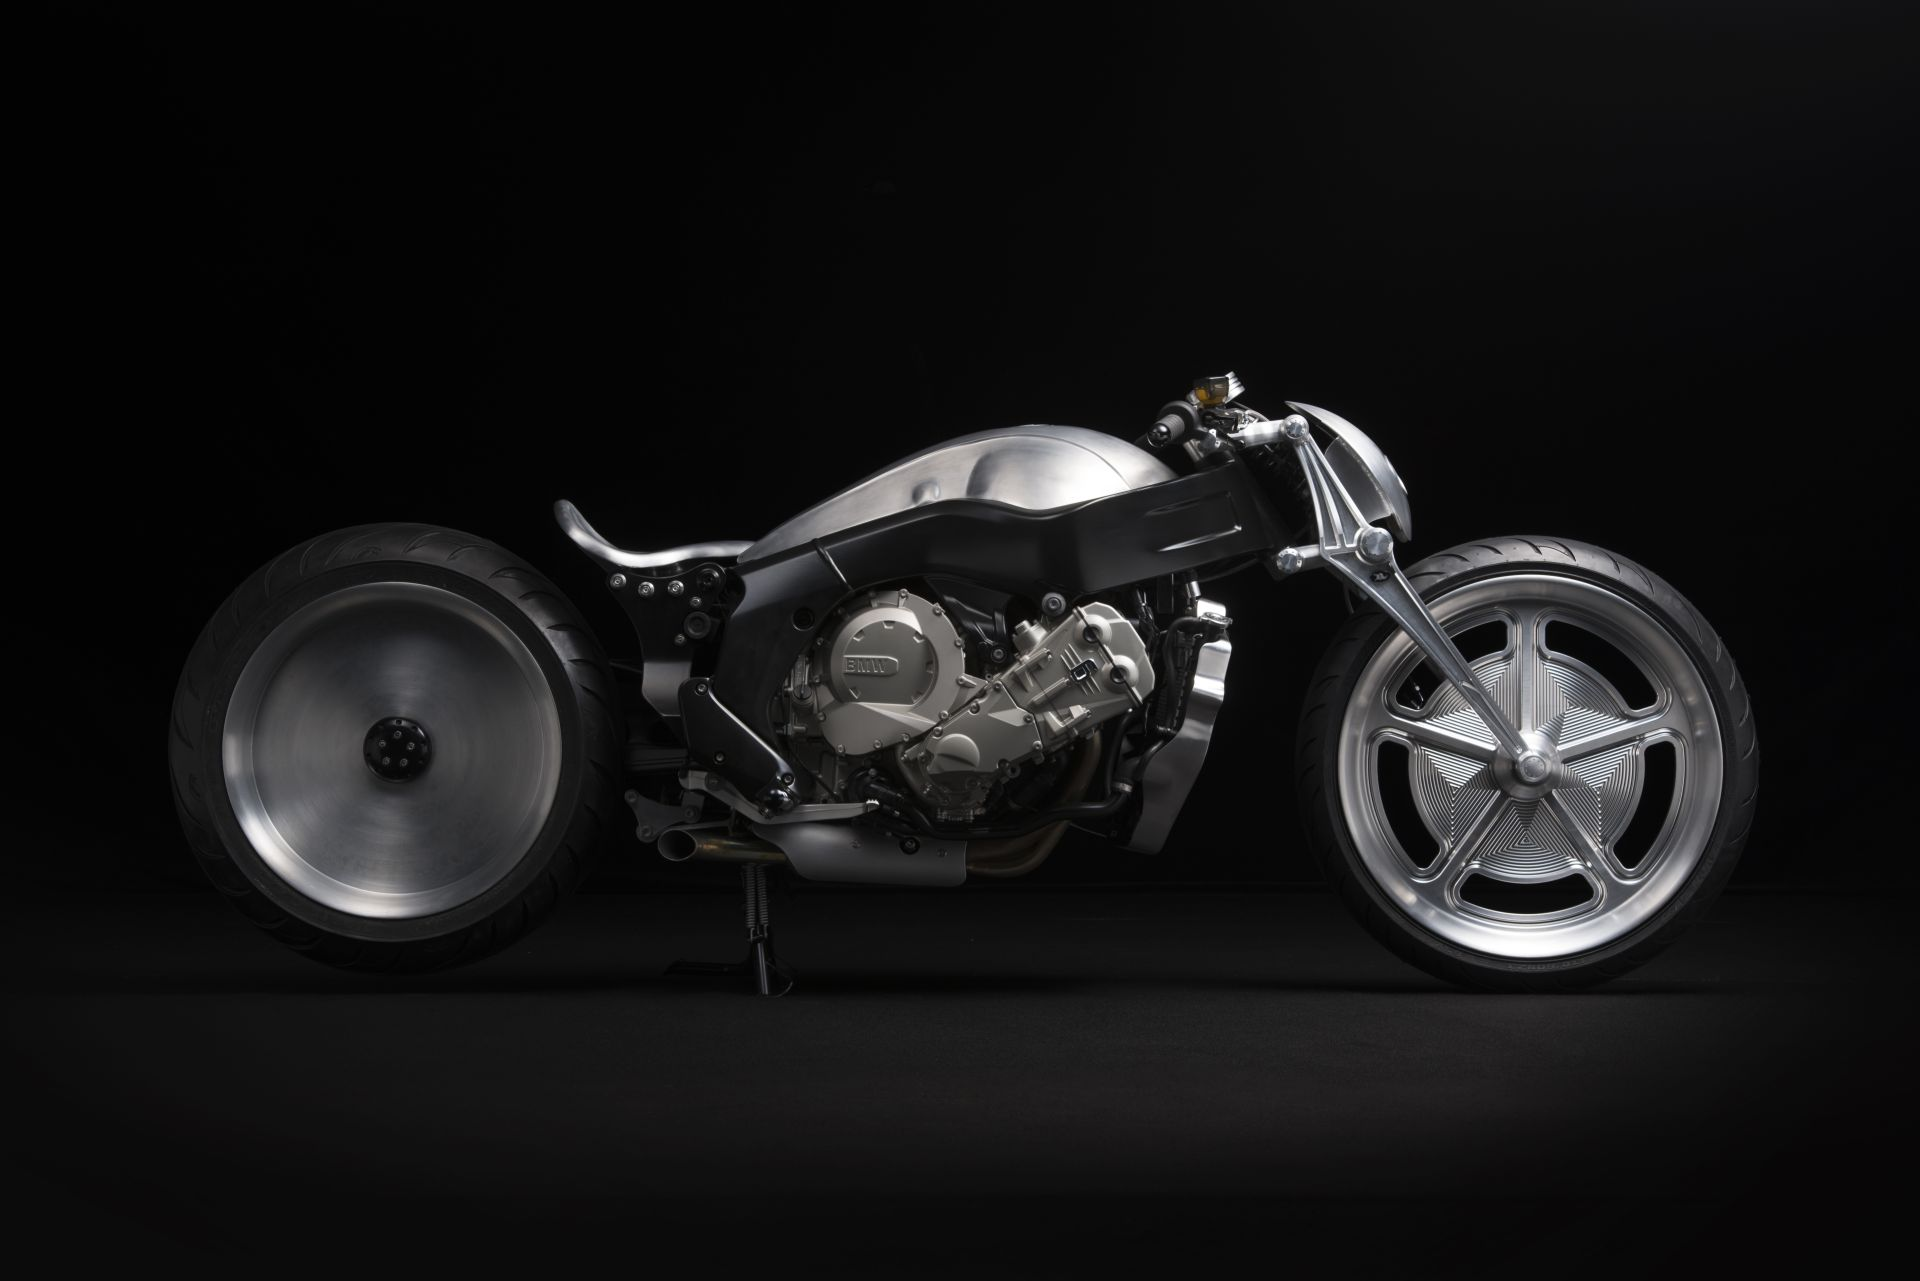 bmw-k1600gtl-becomes-kens-factory-special-evil-machine-lust-video-photo-gallery_6.jpg